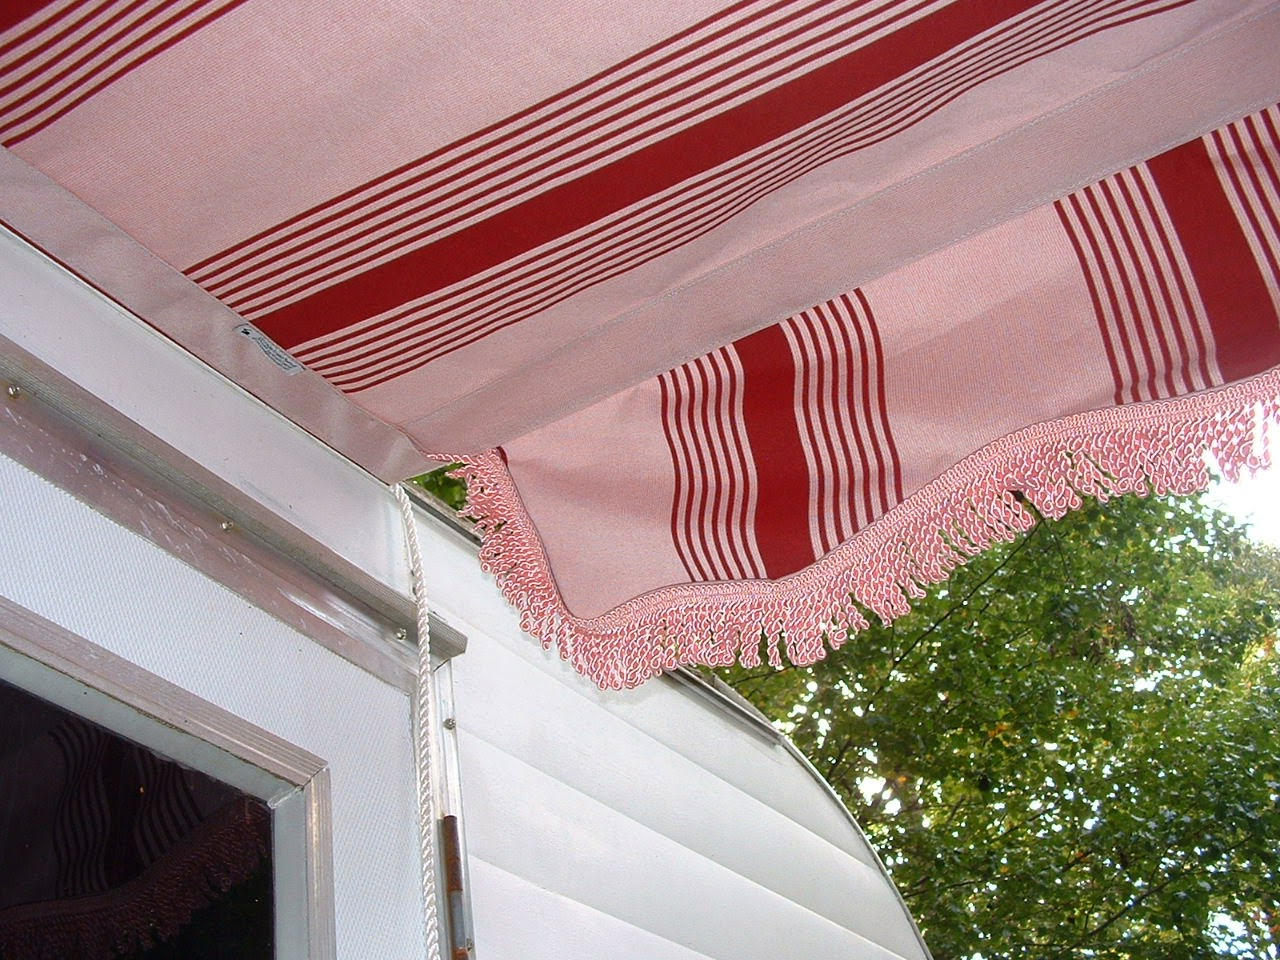 Vintage Awnings Pink Heavy Bullion Fringe On A Vintage Trailer Awning By Kristi